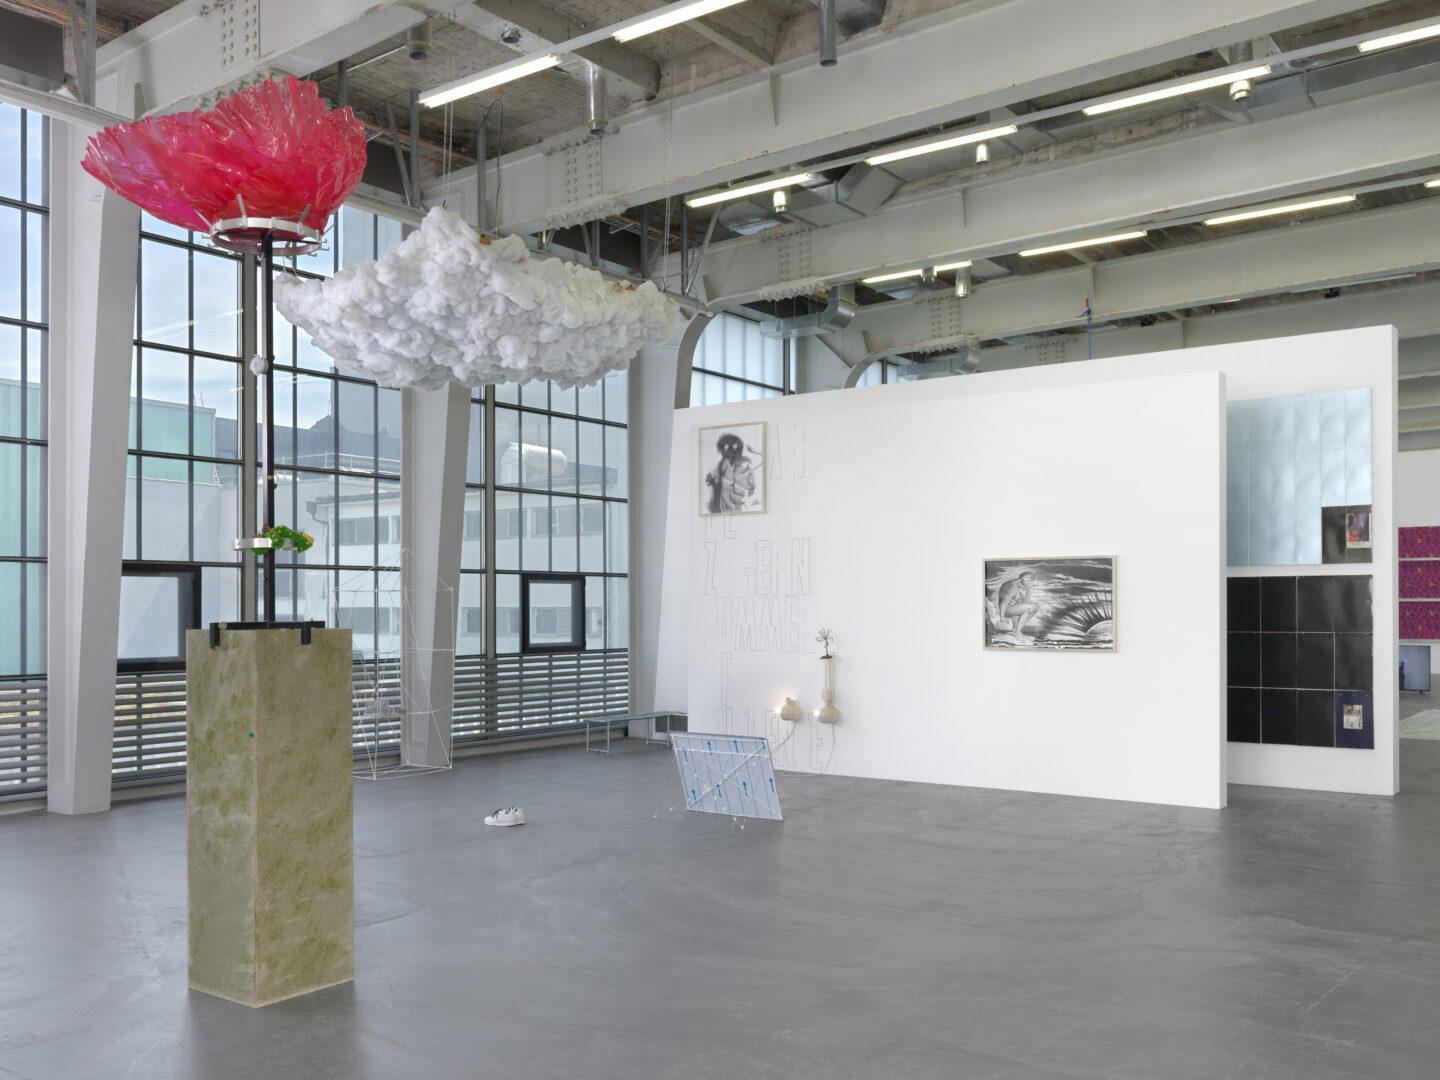 Exhibition View Groupshow «Summer of Suspense» at Kunsthalle Zürich, Zurich, 2020 / Photo: Annik Wetter / Courtesy: the artists and Kunsthalle Zürich